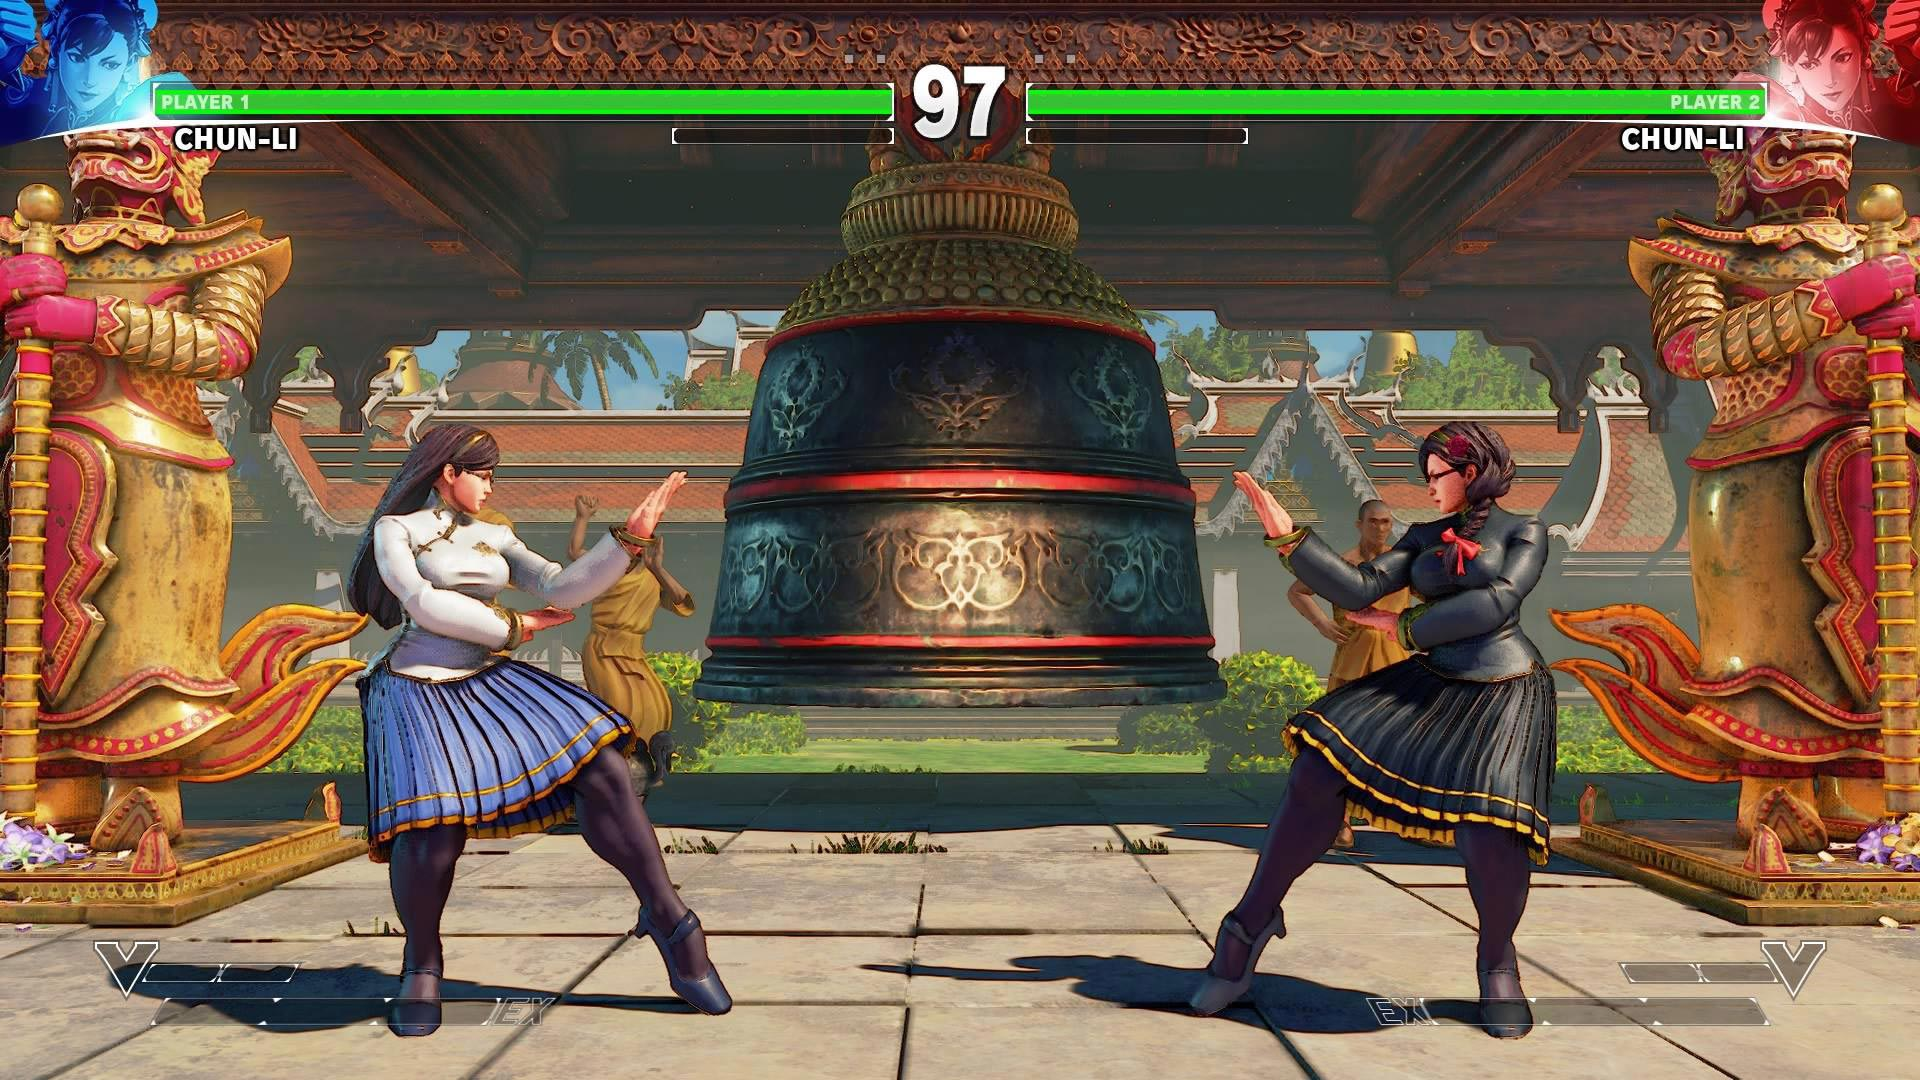 Chun-Li's Street Fighter 5 wardrobe 13 out of 13 image gallery